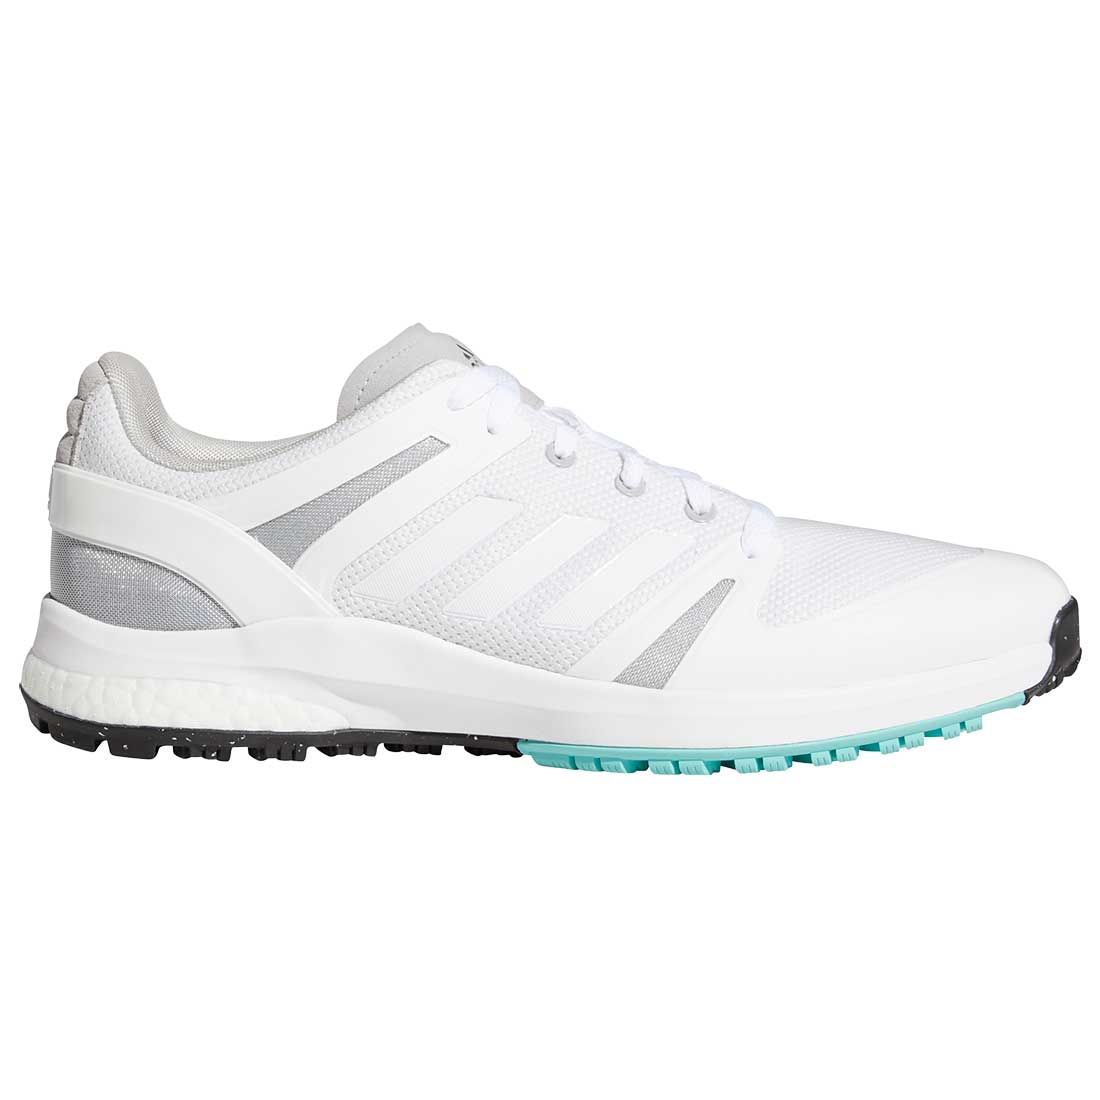 Adidas EQT Spikeless Golf Shoes White/Grey Two